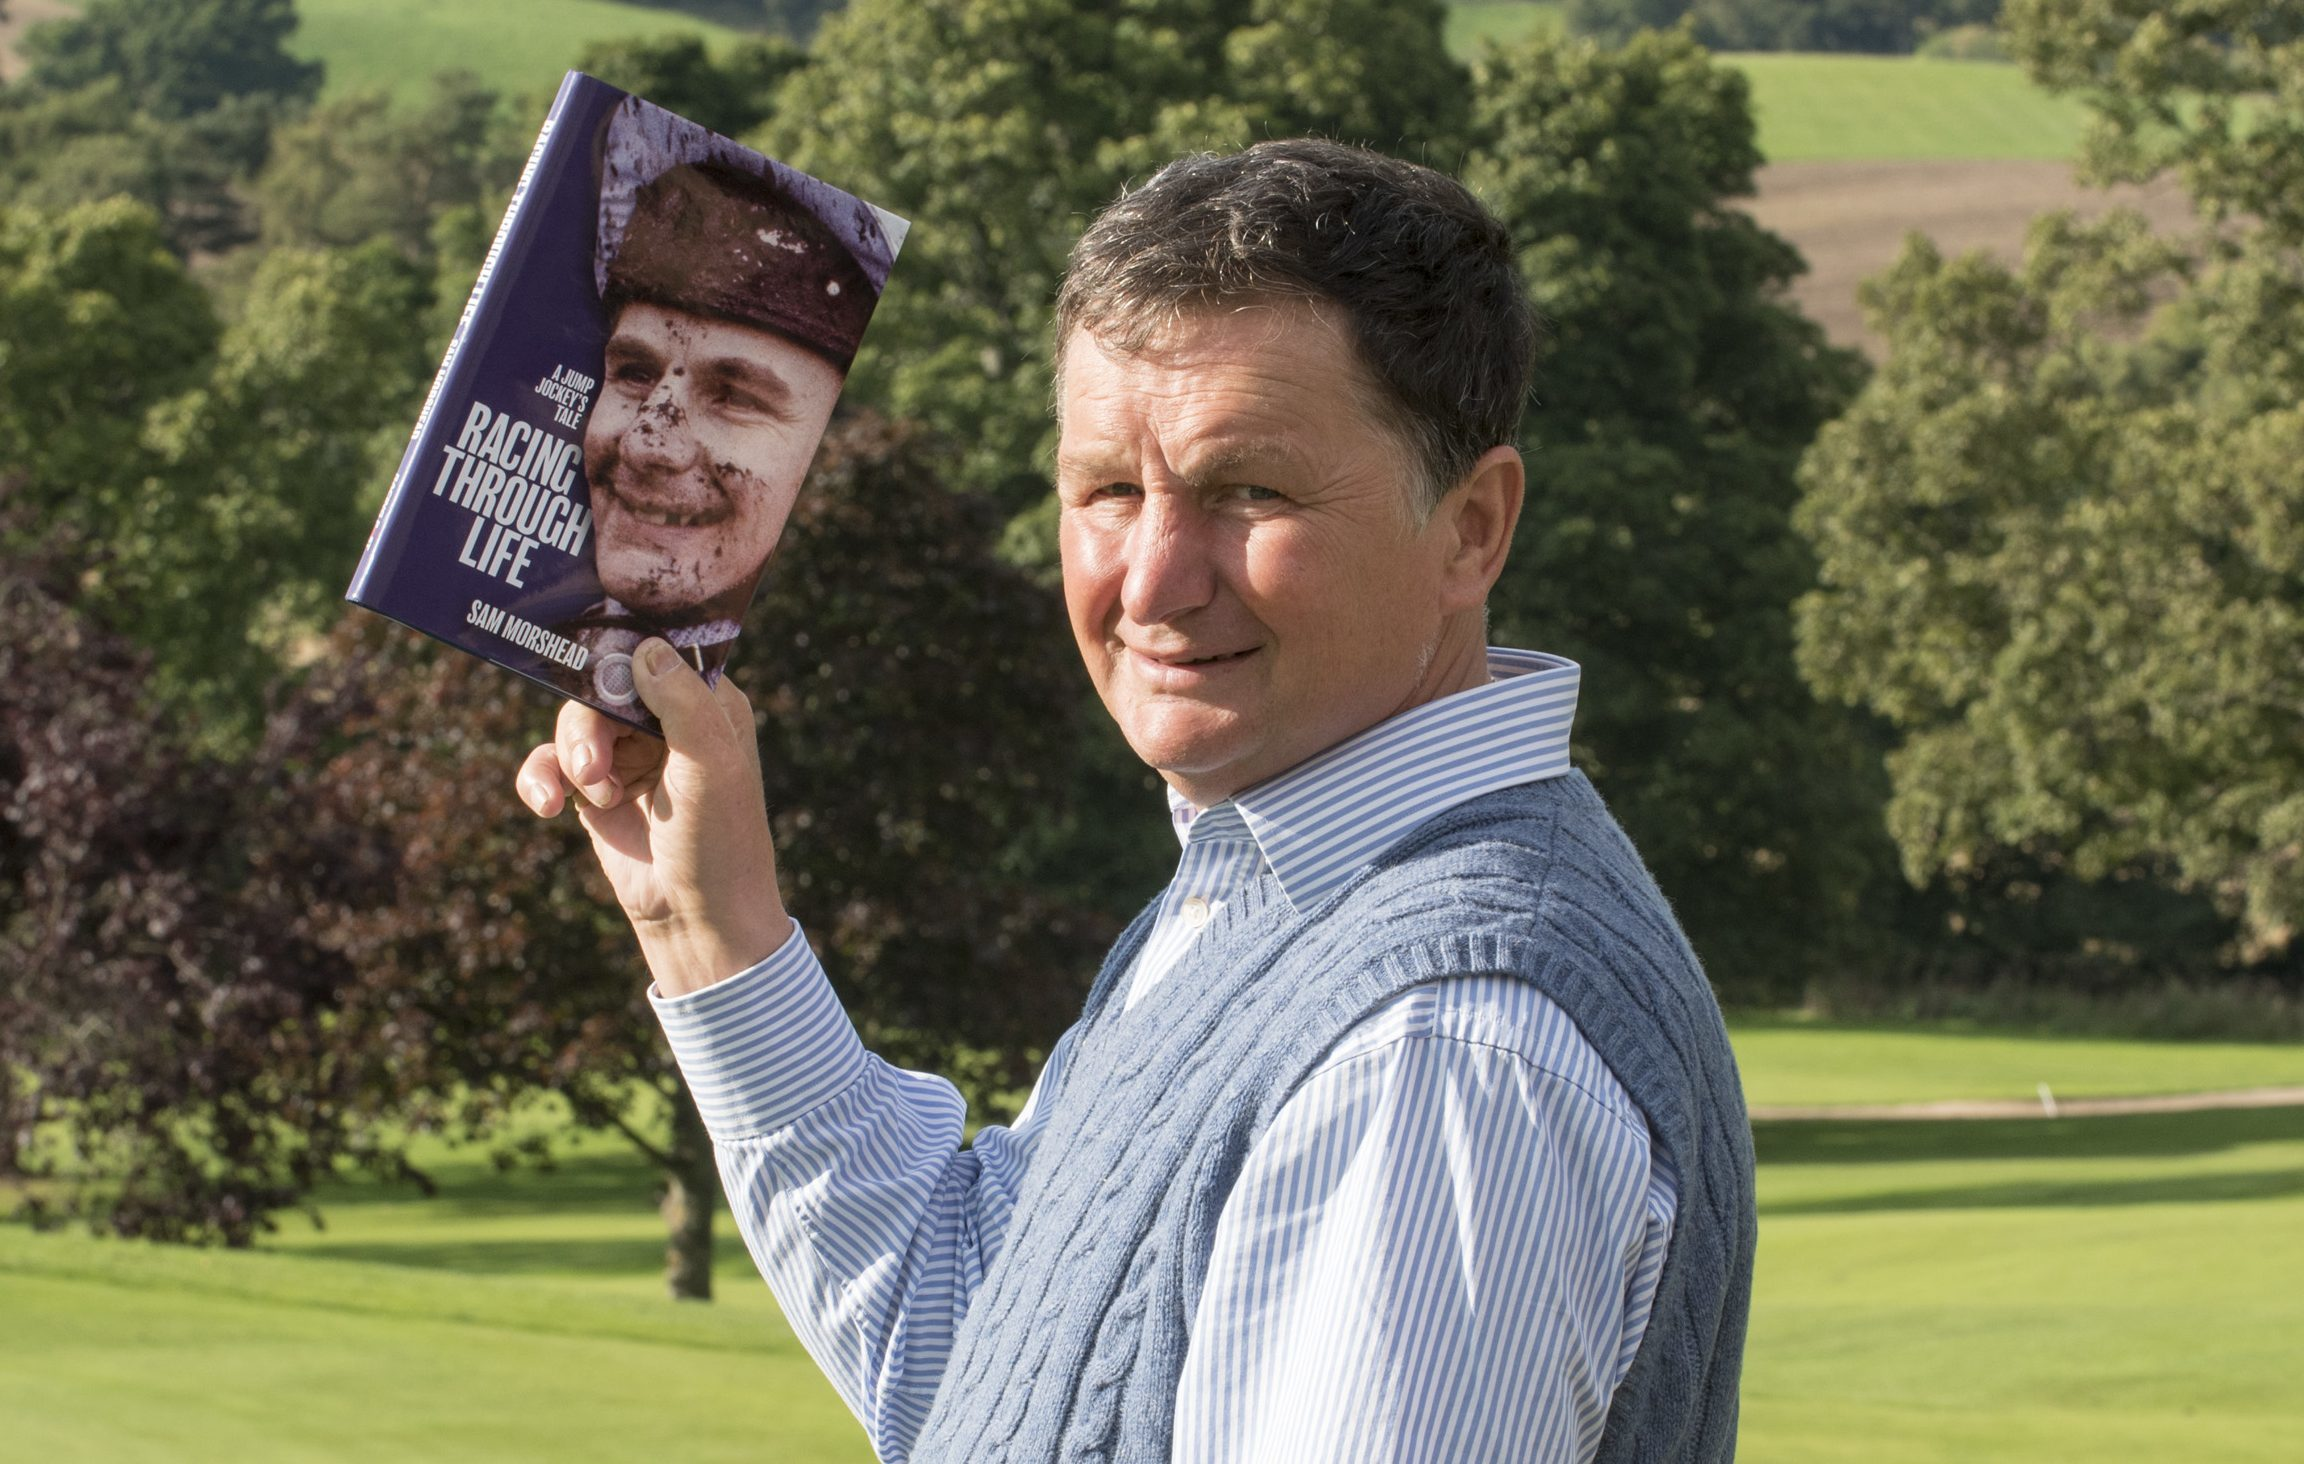 Sam Morshead with his book.